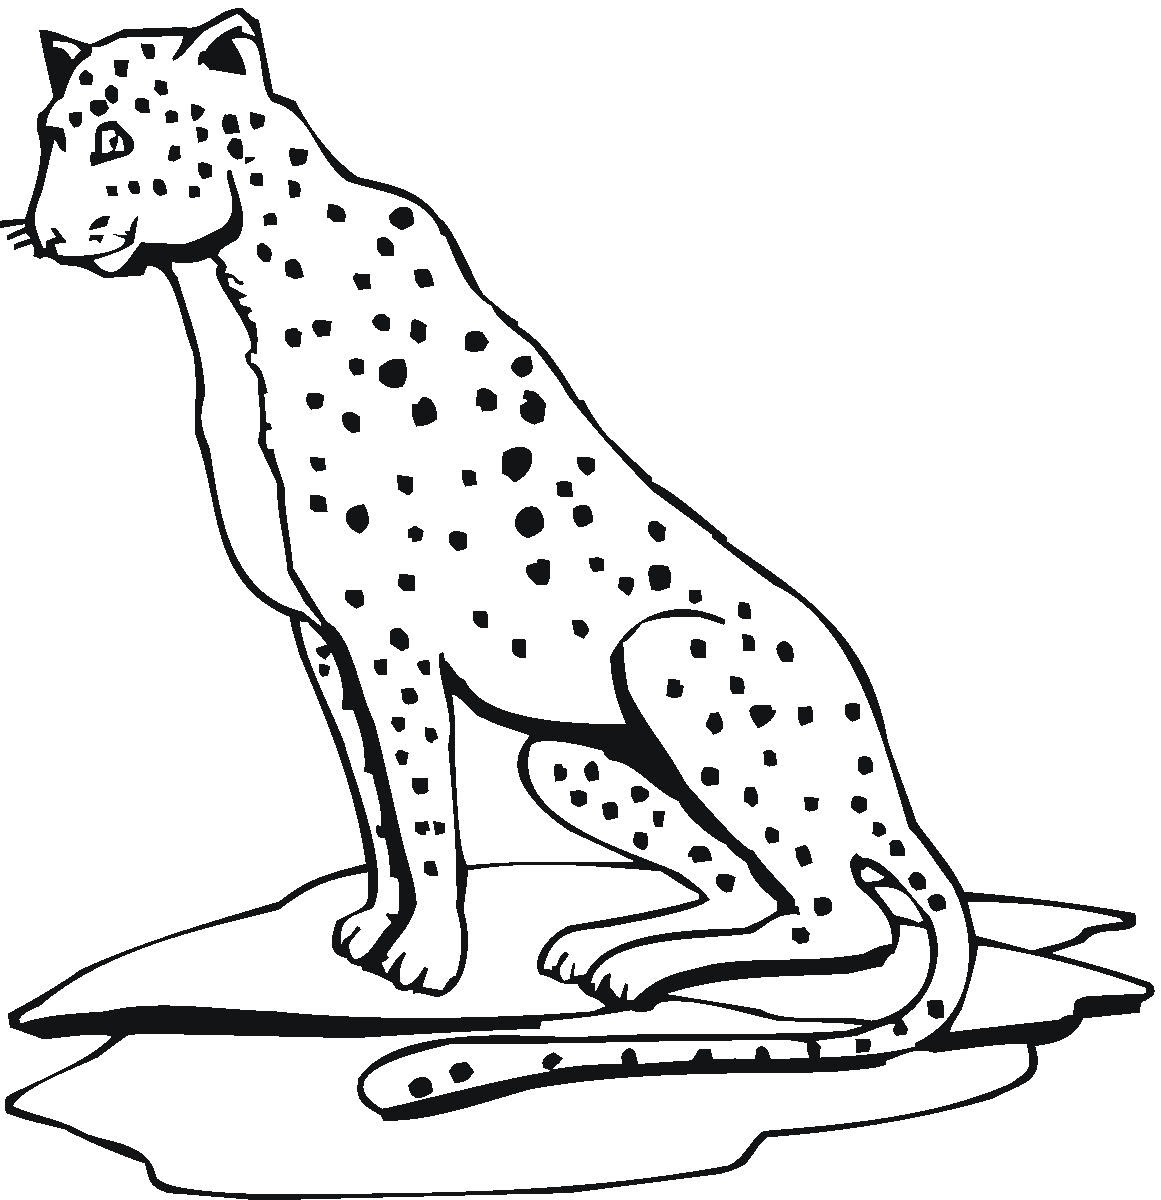 Cheetah Cb40 - Friv Free Coloring Pages For Children - Cheetah ... | 1200x1161